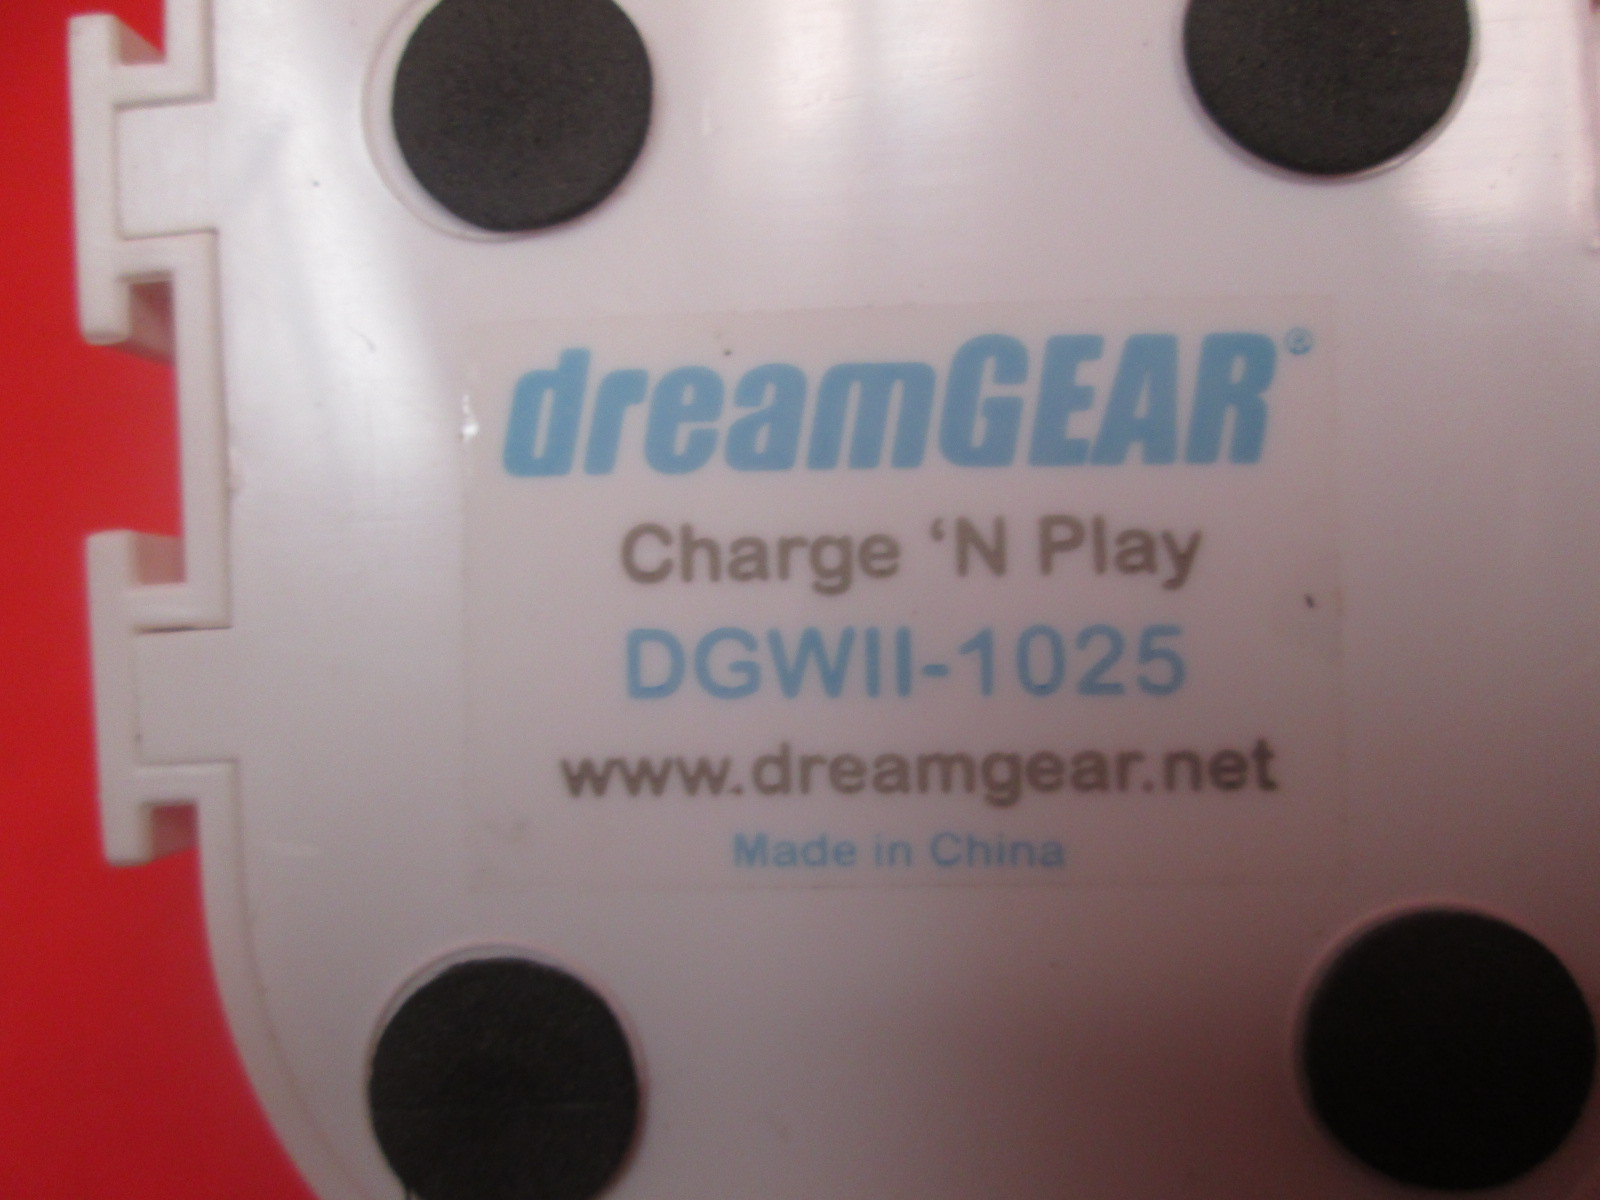 Image 1 of Dreamgear DGWII-1025 Remote Charging Station For Wii